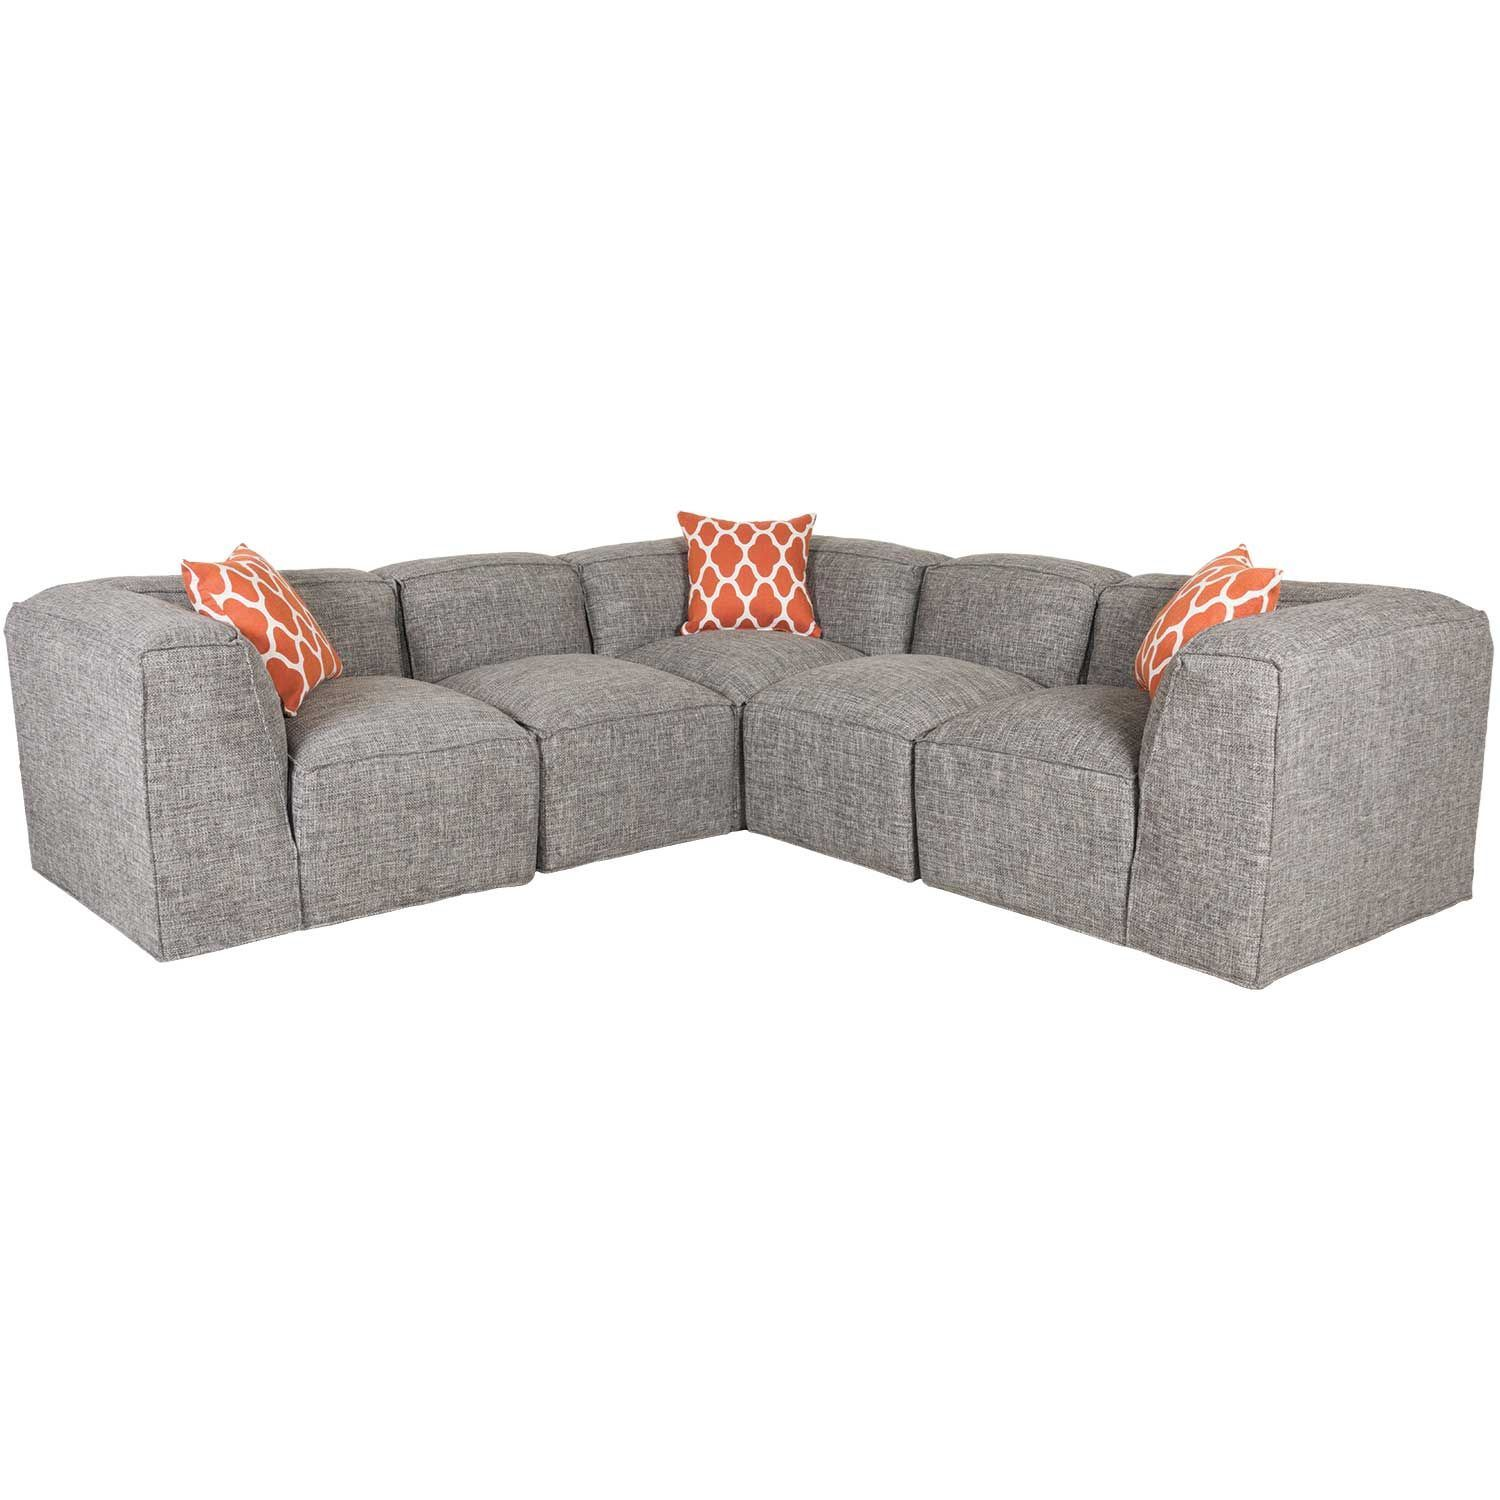 Freestyle 5 Piece Modular Sectional